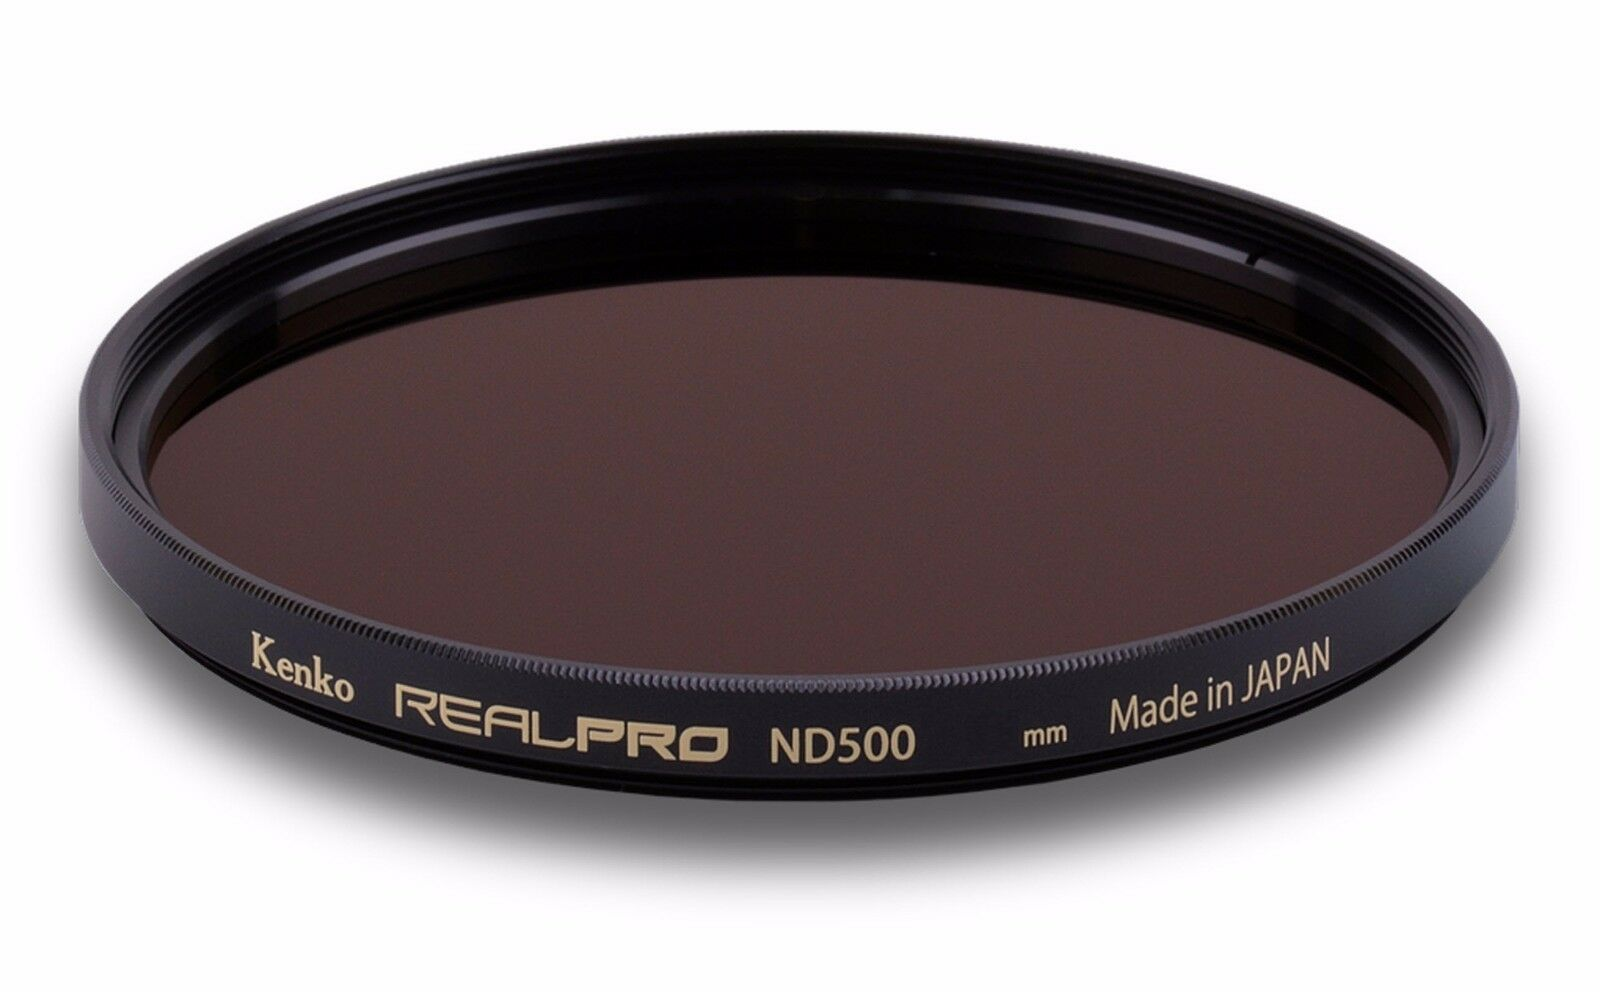 Kenko 55mm PRO ND500 Multi-Coated Camera Lens Filters